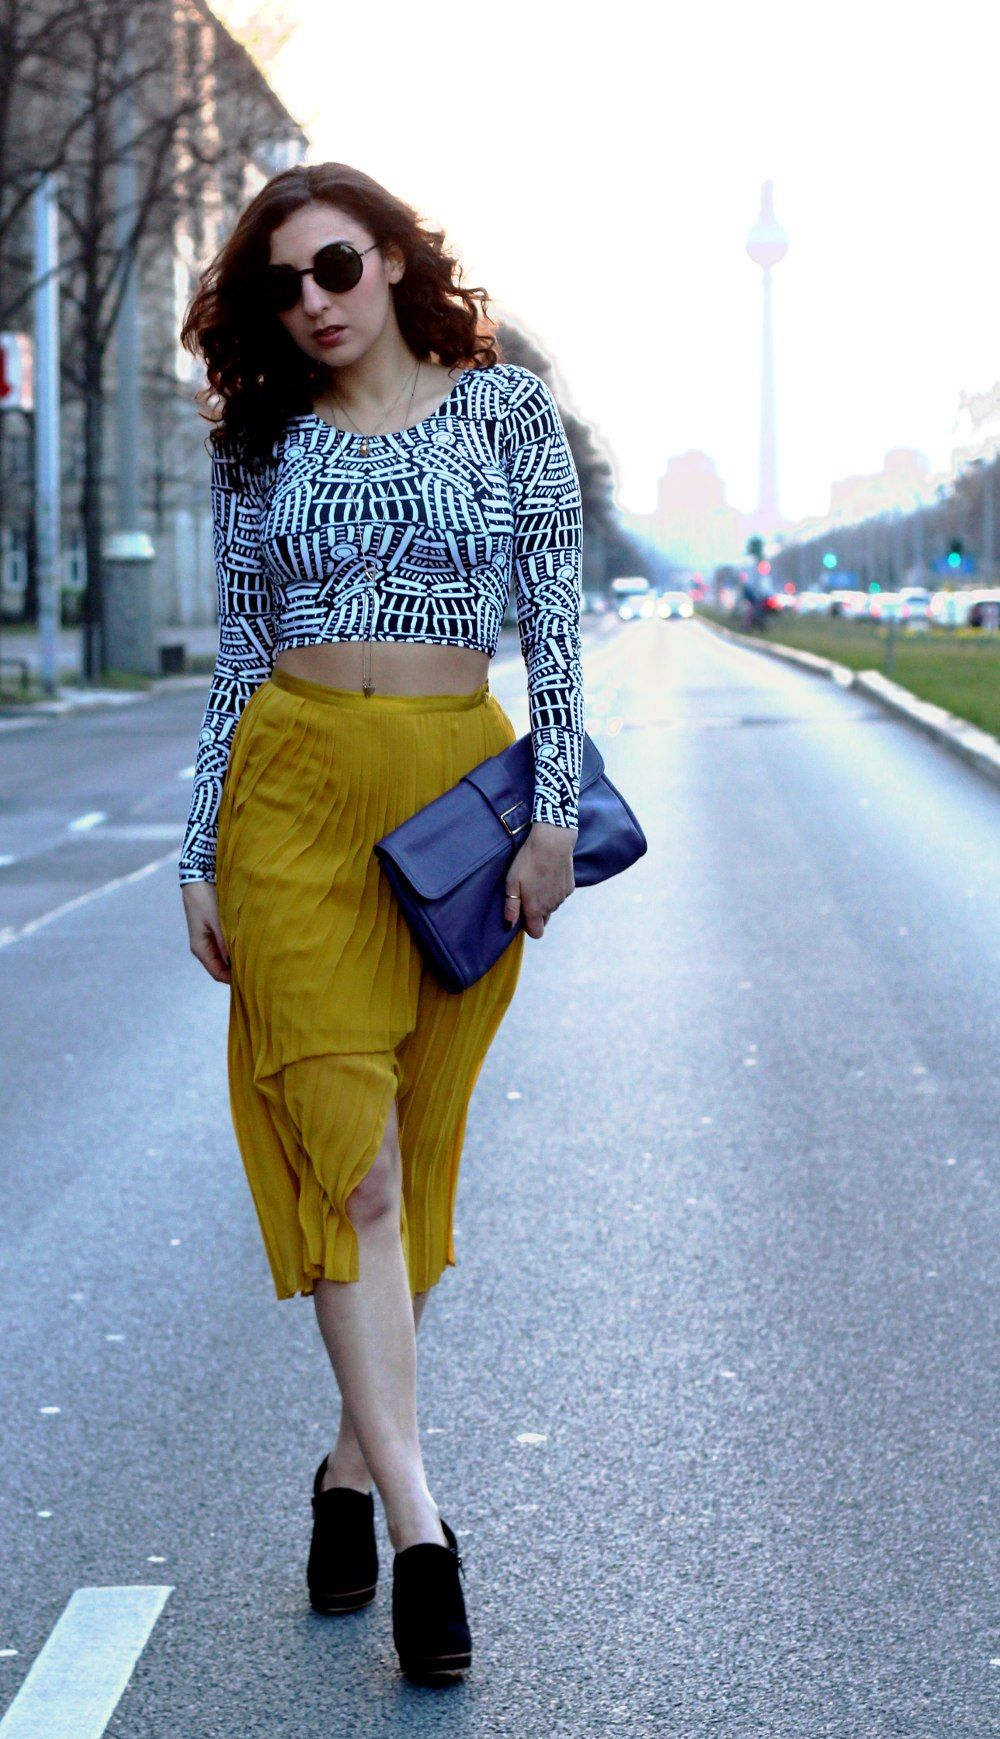 7bb1f52e0af1 Yellow Skirt Outfit    For more inspiration visit samieze.com   Berlin  Fashion blog